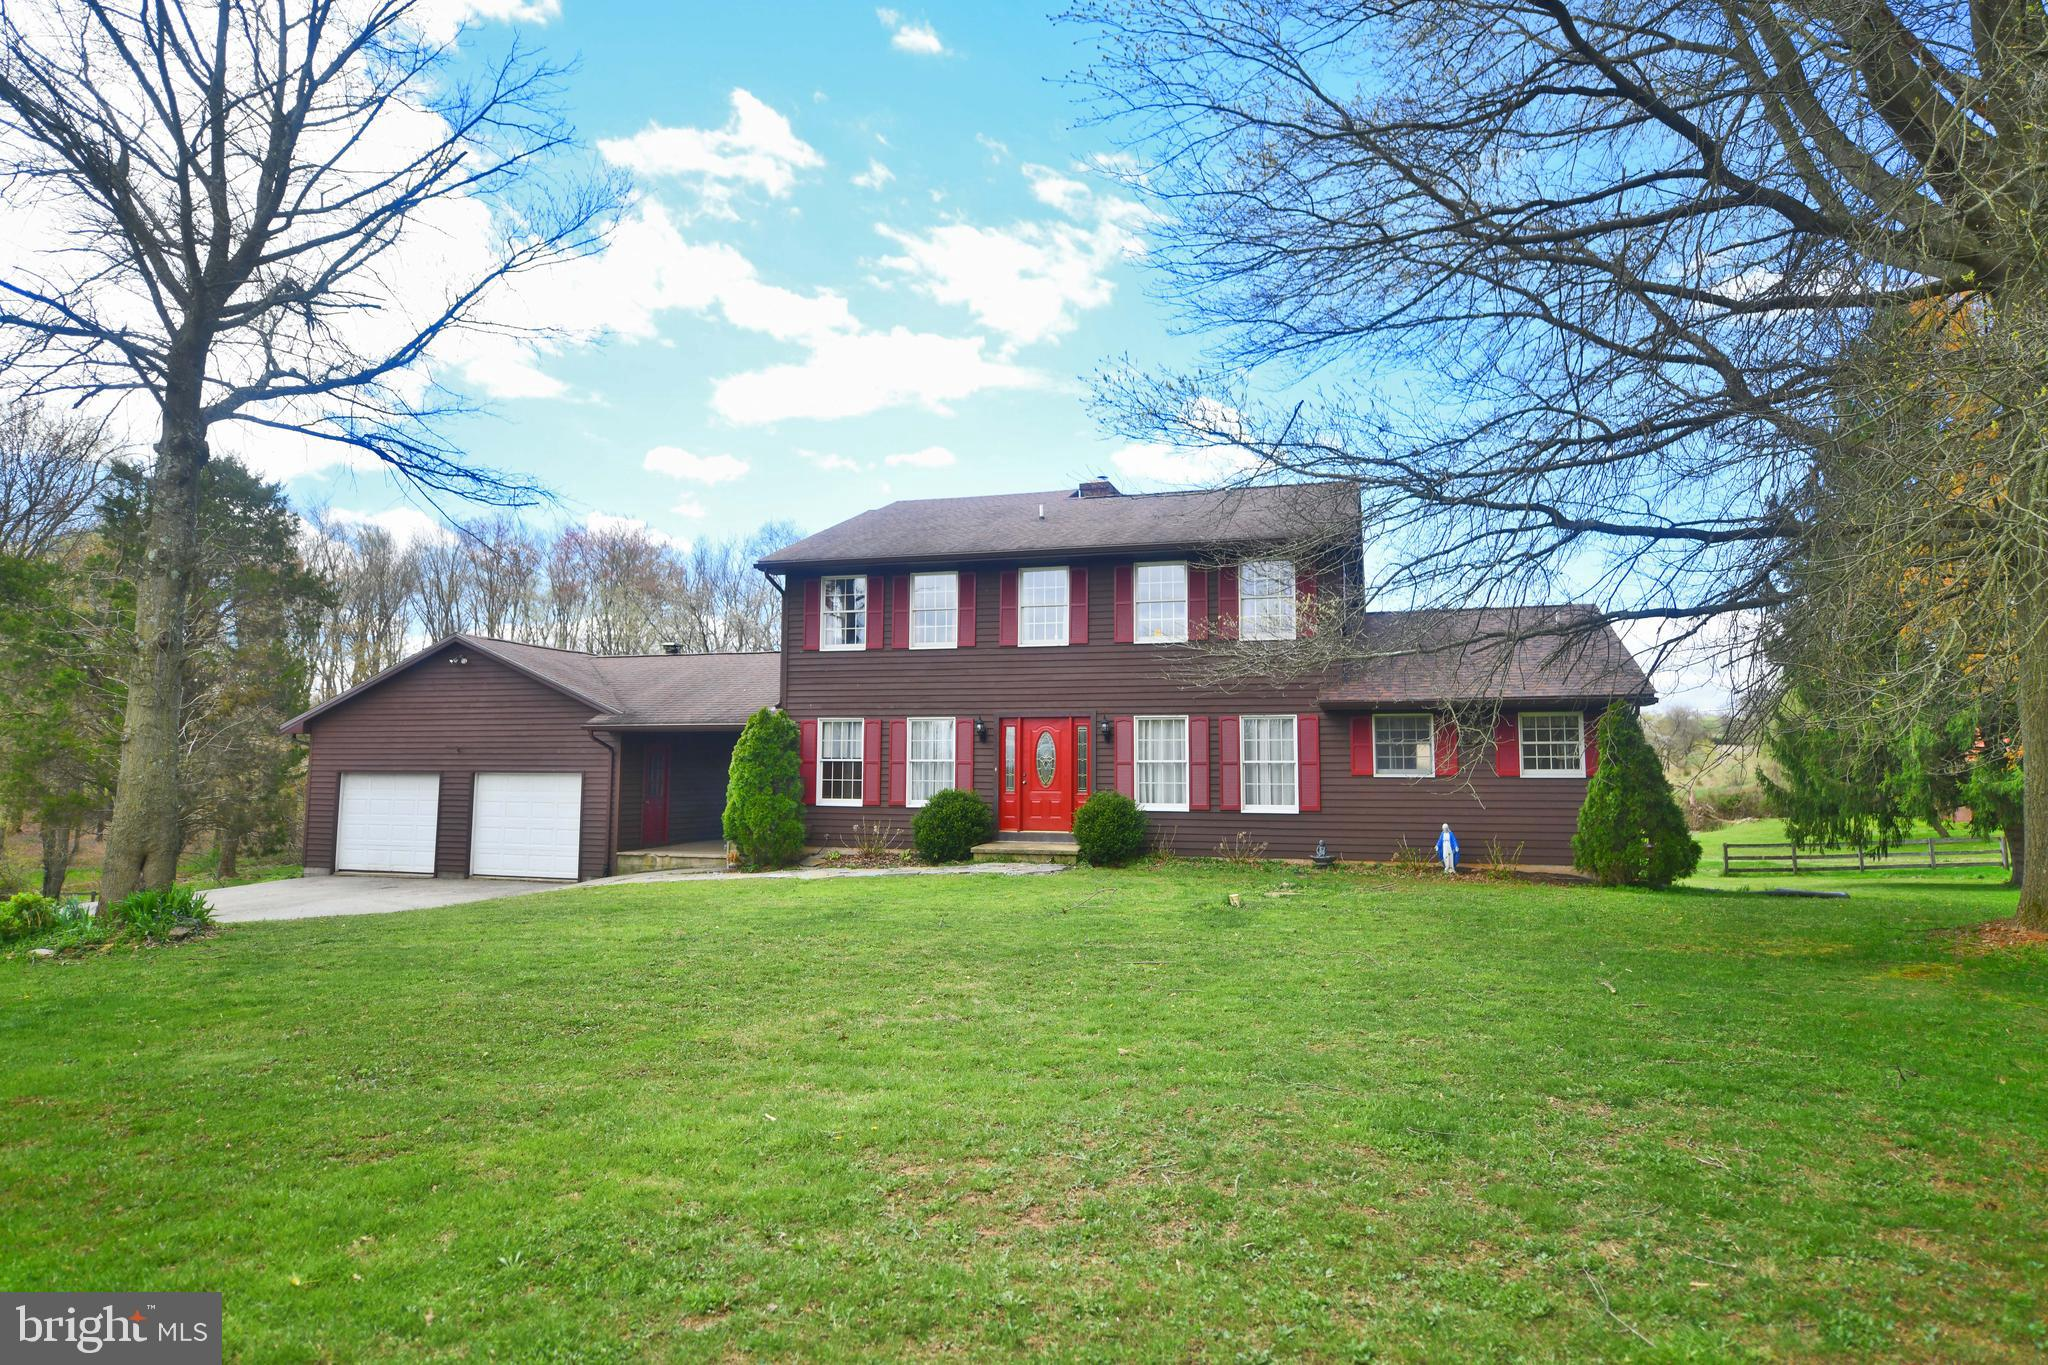 504 MOUNT OLIVET CHURCH ROAD, FAWN GROVE, PA 17321